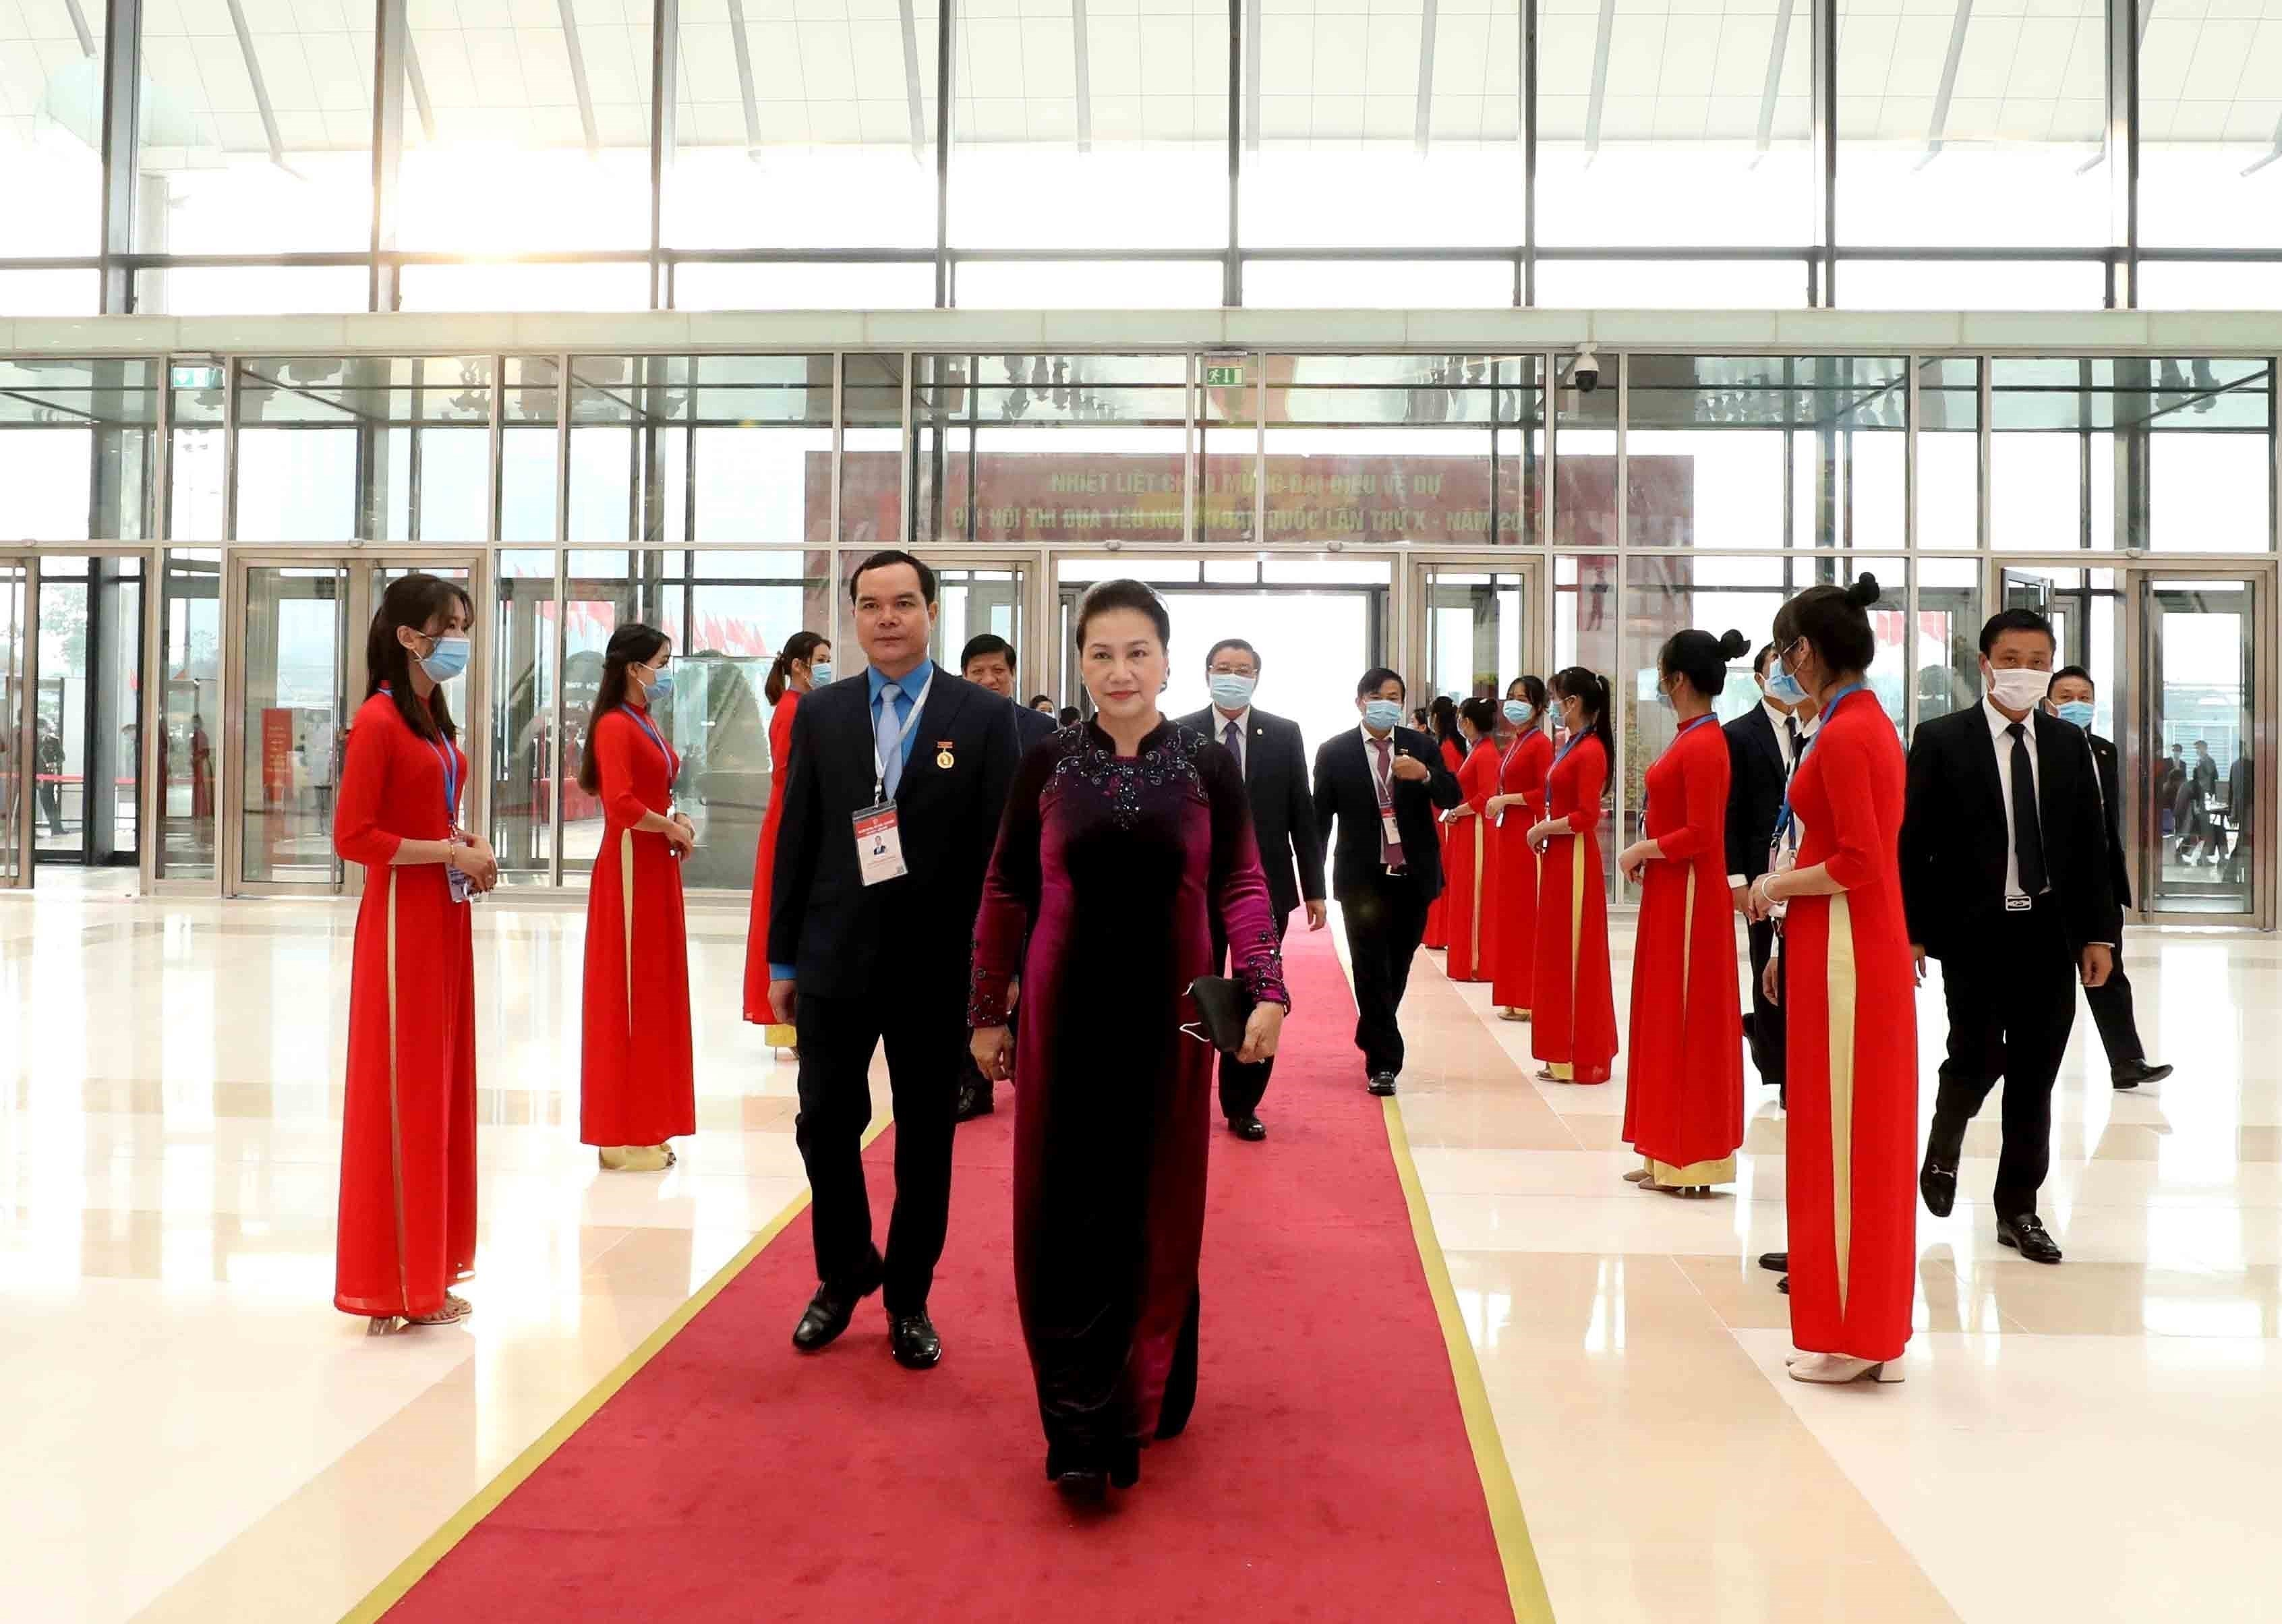 10th National Patriotic Emulation Congress opens in Hanoi hinh anh 3